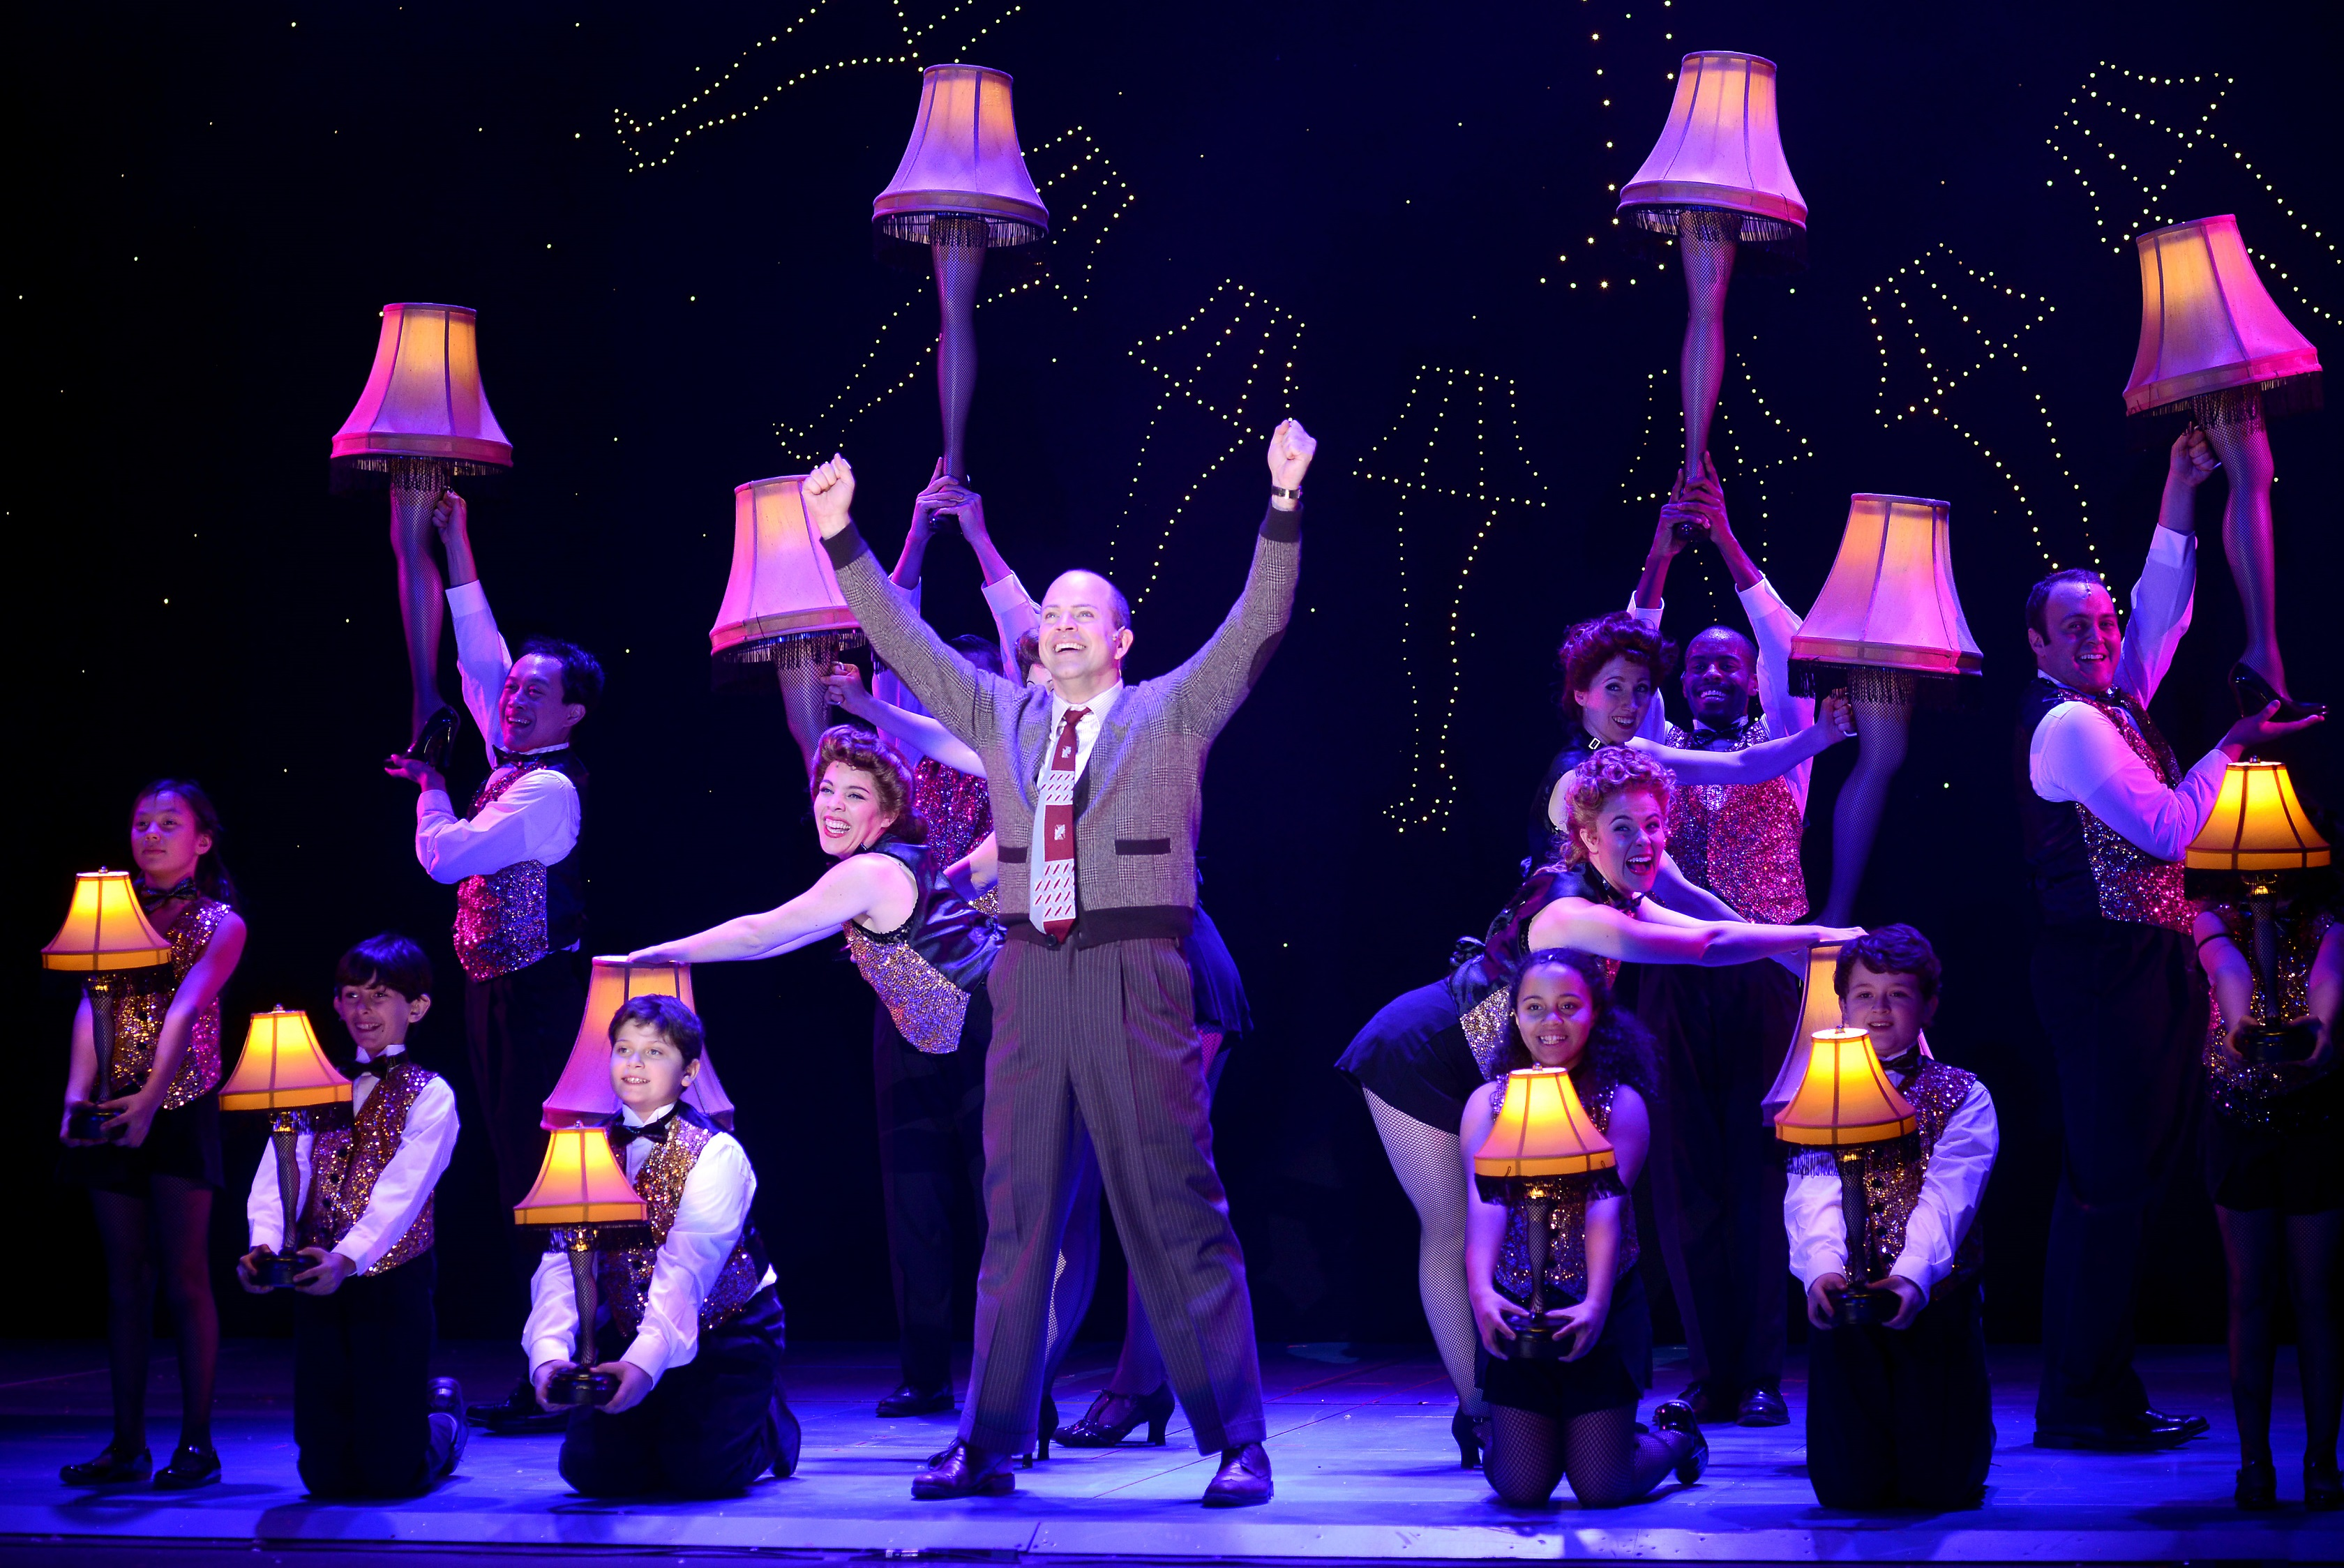 BWW Review: A CHRISTMAS STORY, THE MUSICAL at Shea's Buffalo Theatre